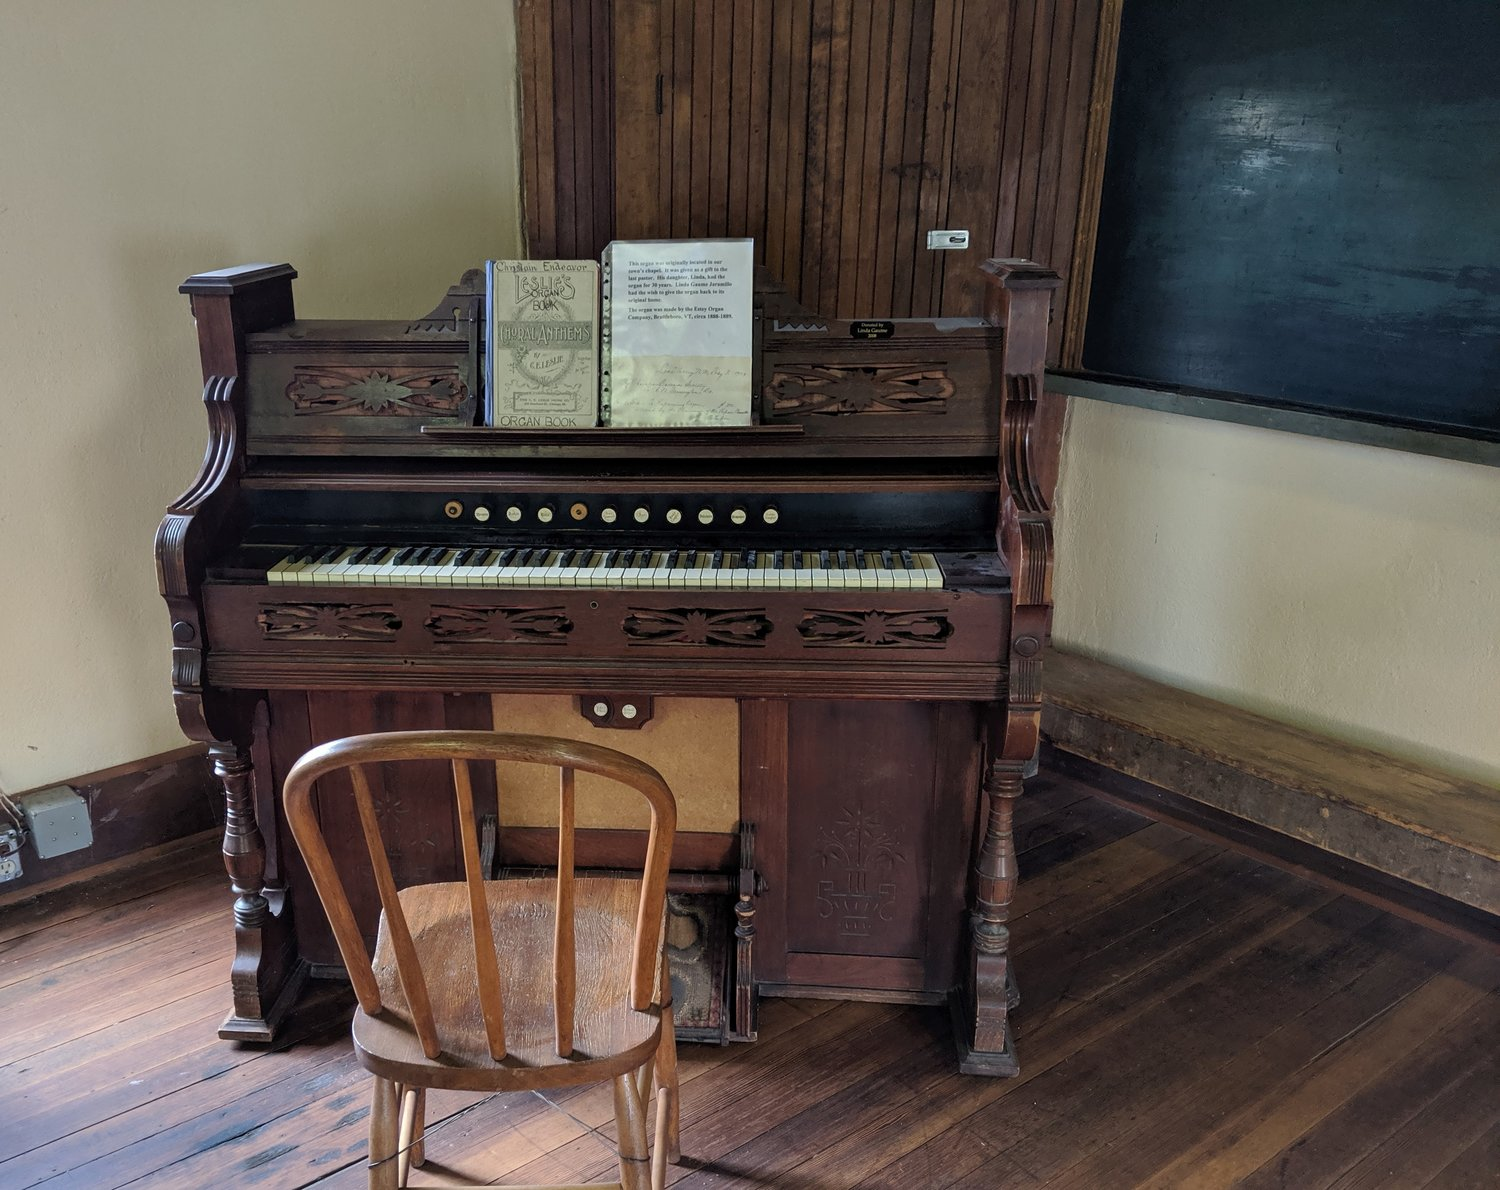 A bellows organ is one of the numerous historic furnishings and artifacts contained in the old schoolhouse at Lake Valley.